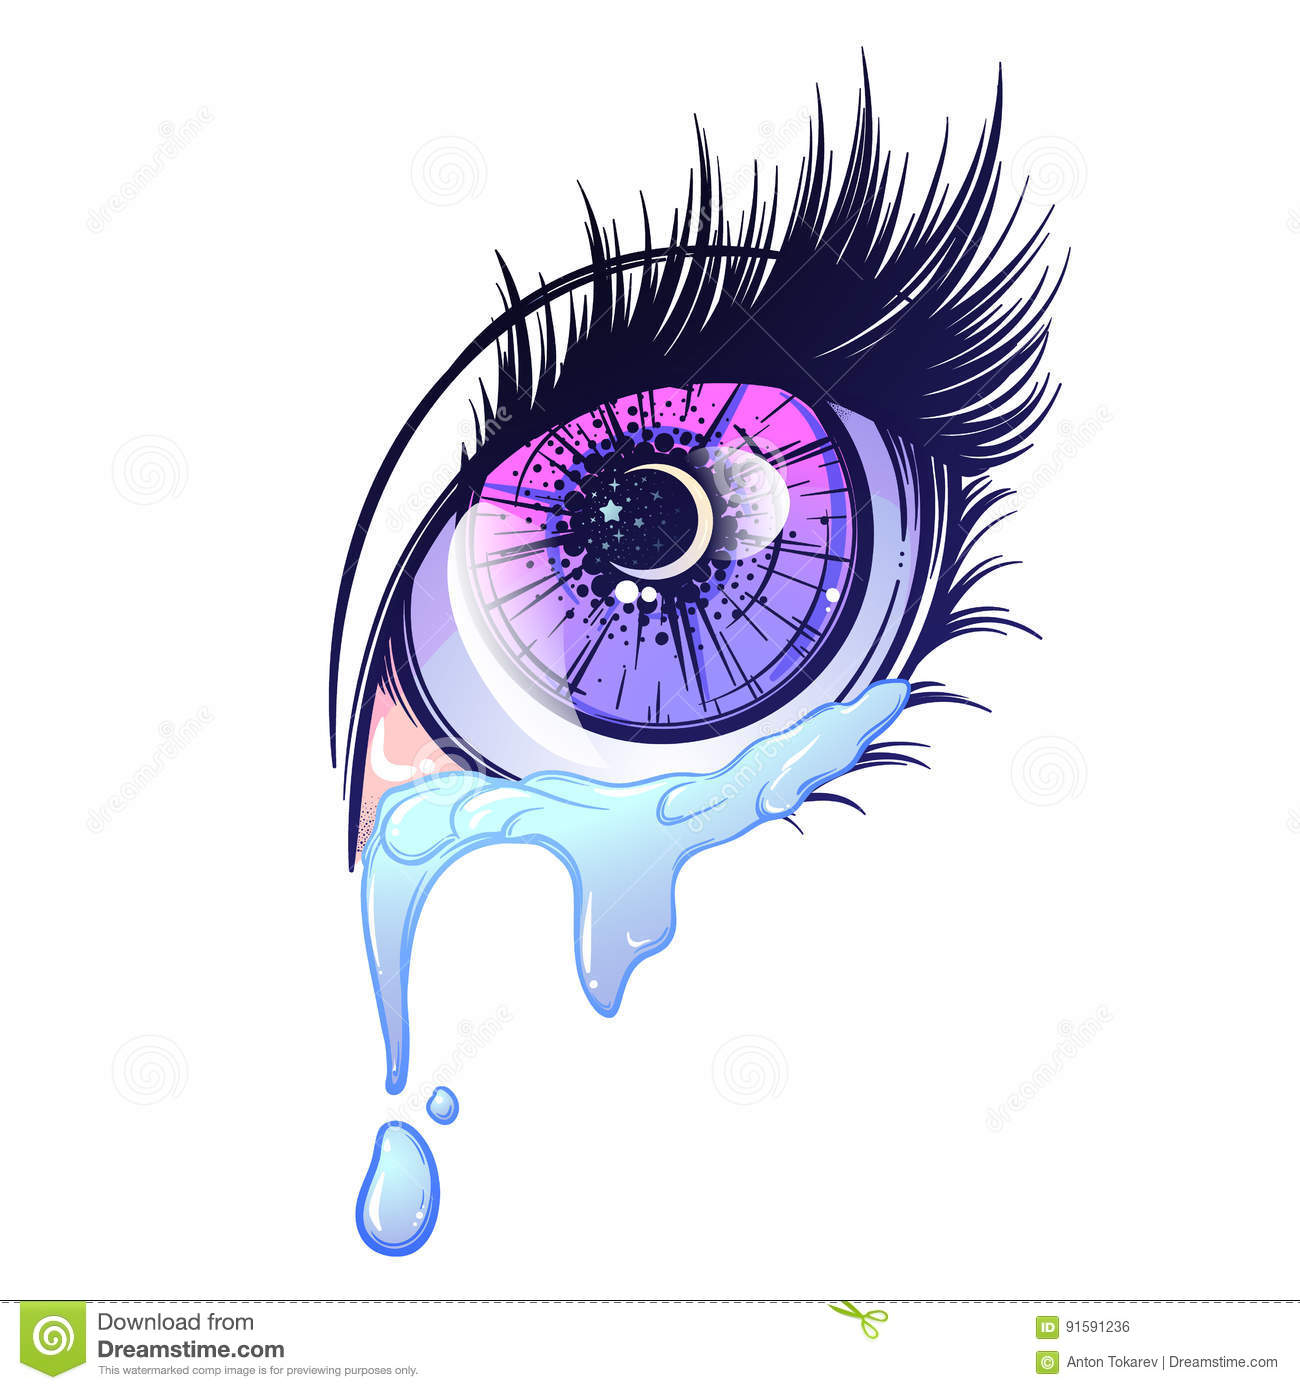 Crying eye in anime or manga style with teardrops and reflections highly detailed vector illustration